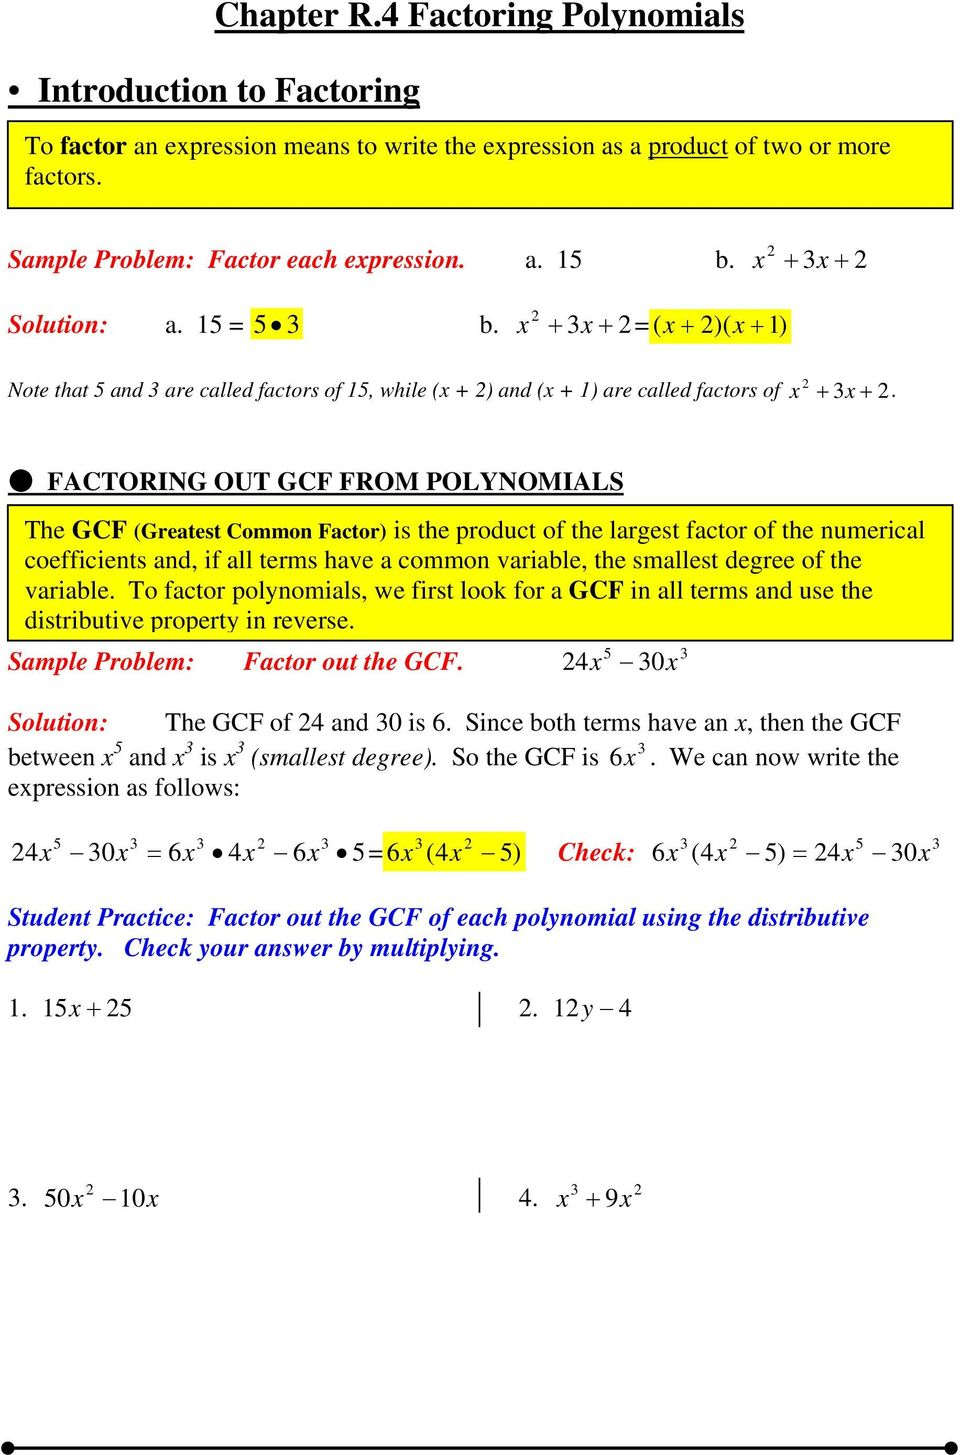 FACTORING OUT GCF FROM POLYNOMIALS The GCF (Greatest Common Factor) is the product of the largest factor of the numerical coefficients and, if all terms have a common variable, the smallest degree of